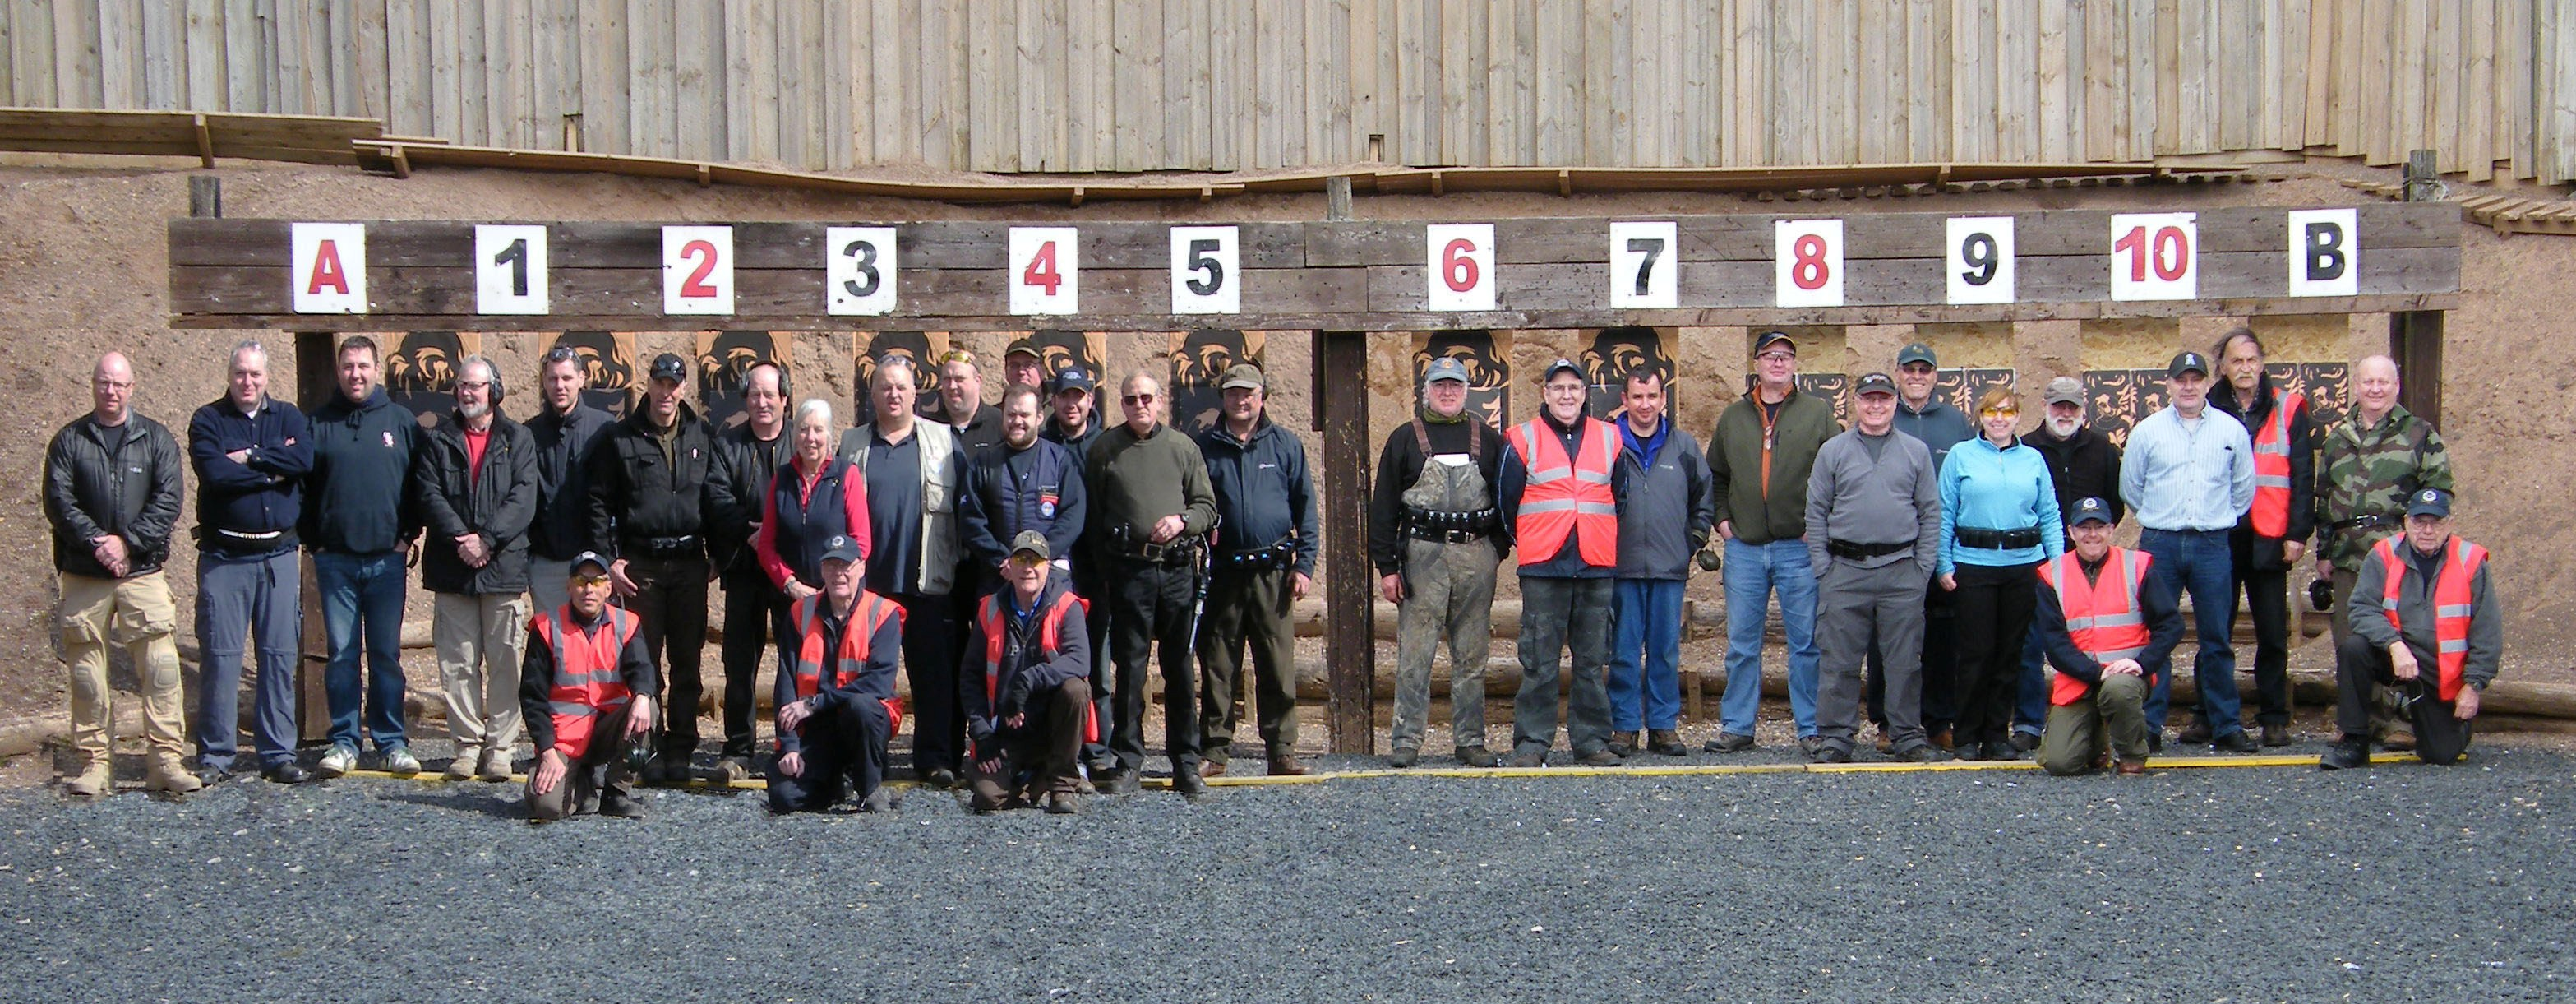 JOINT SERVICES PISTOL CLUB  OPEN COMPETITION: APRIL 2013